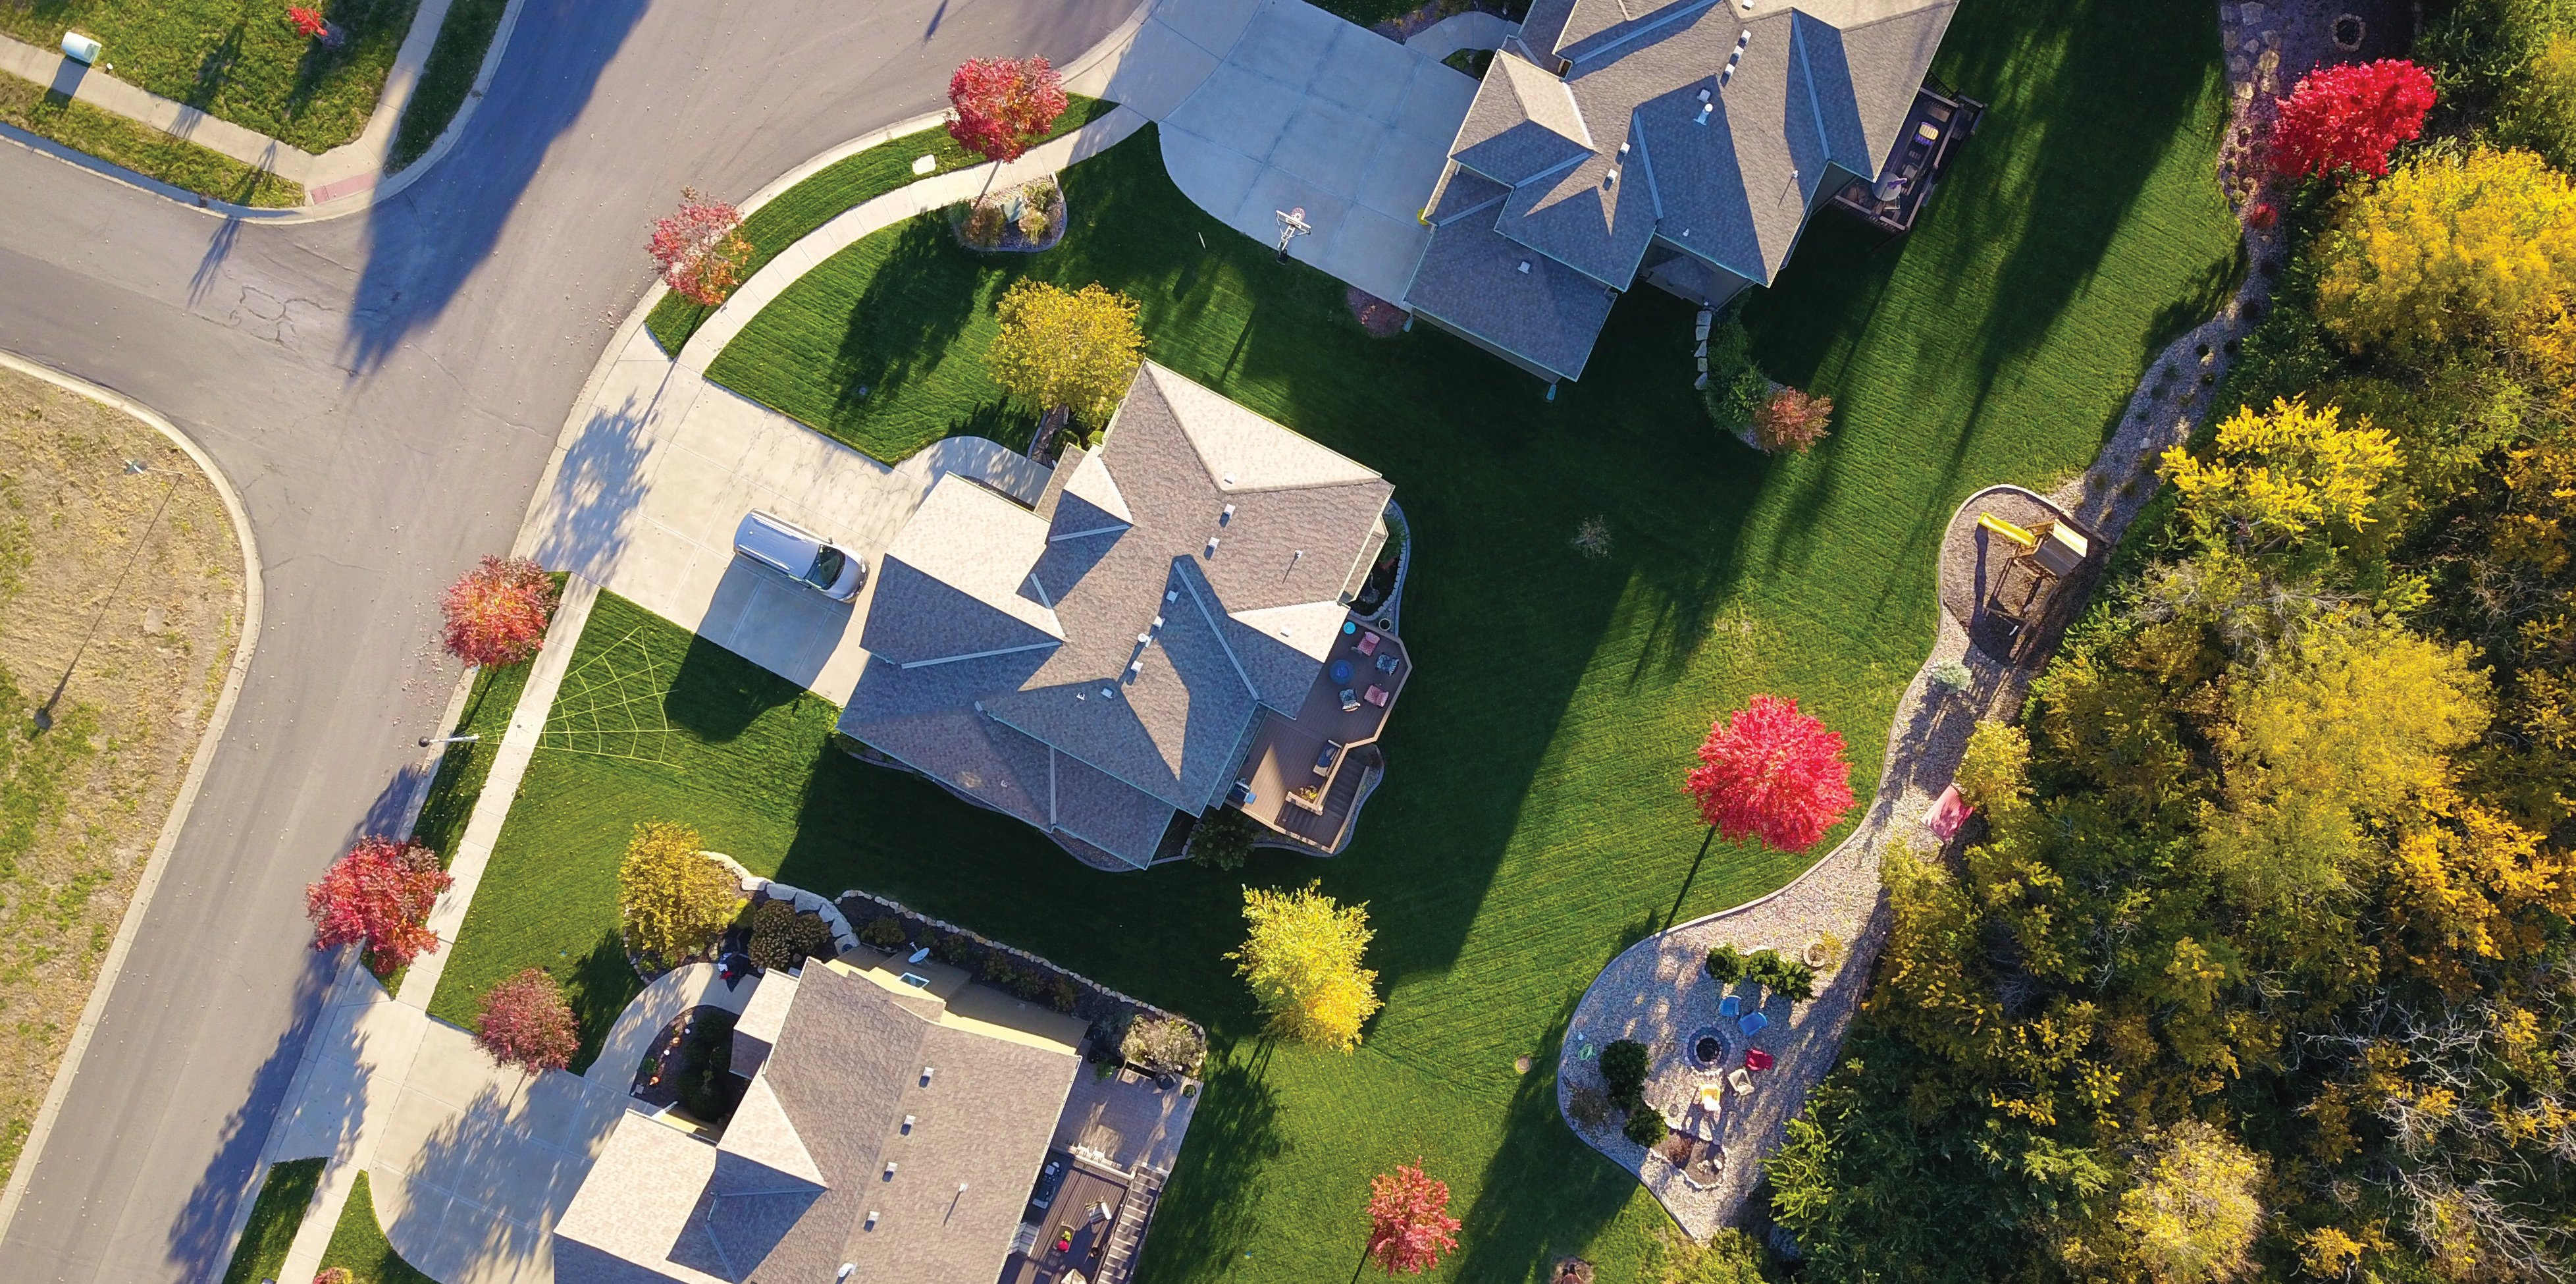 Birdseye view of houses - property taxes